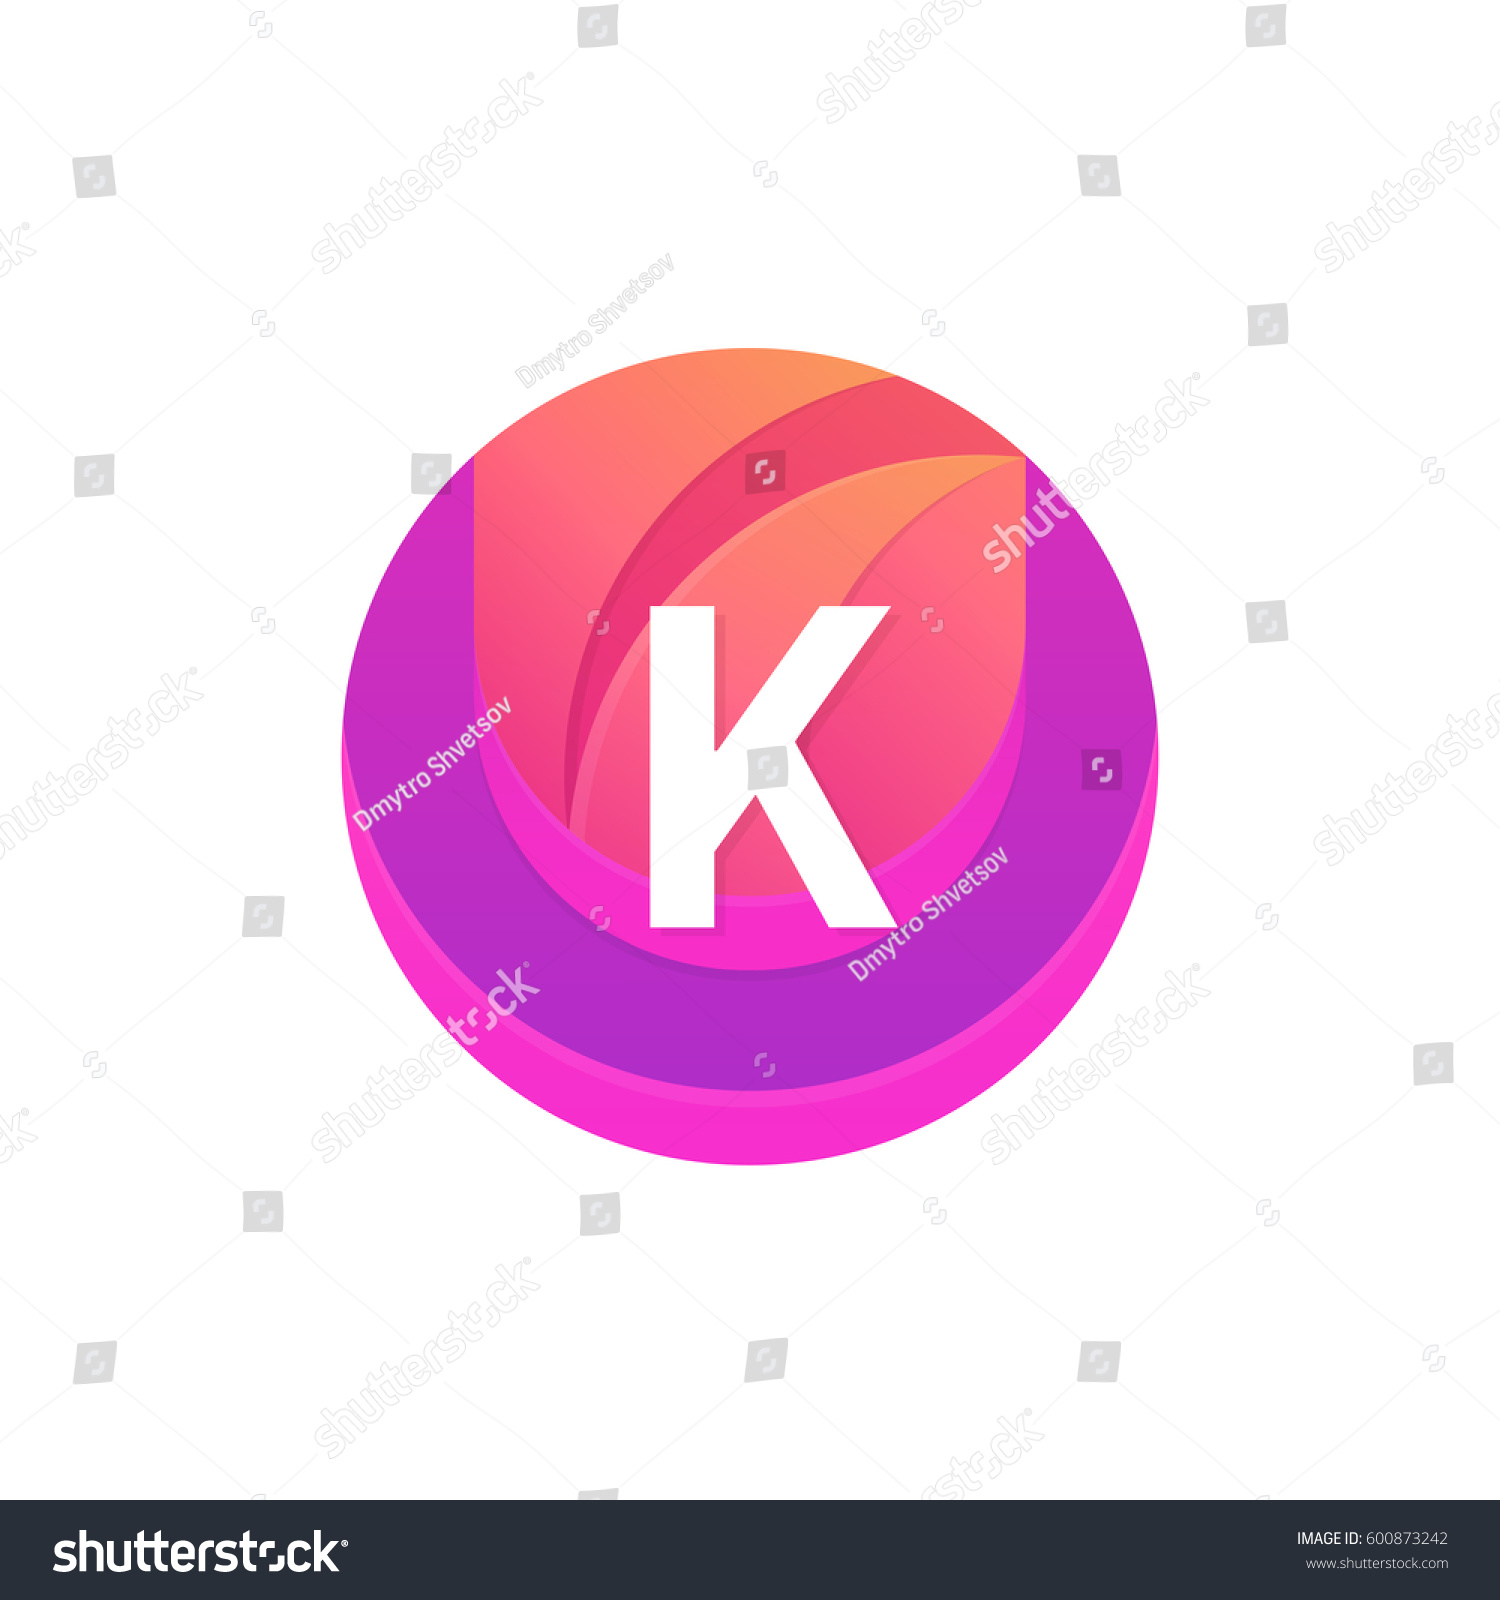 Letter K Logo Abstract Circle Shape Stock Vector (Royalty Free ...